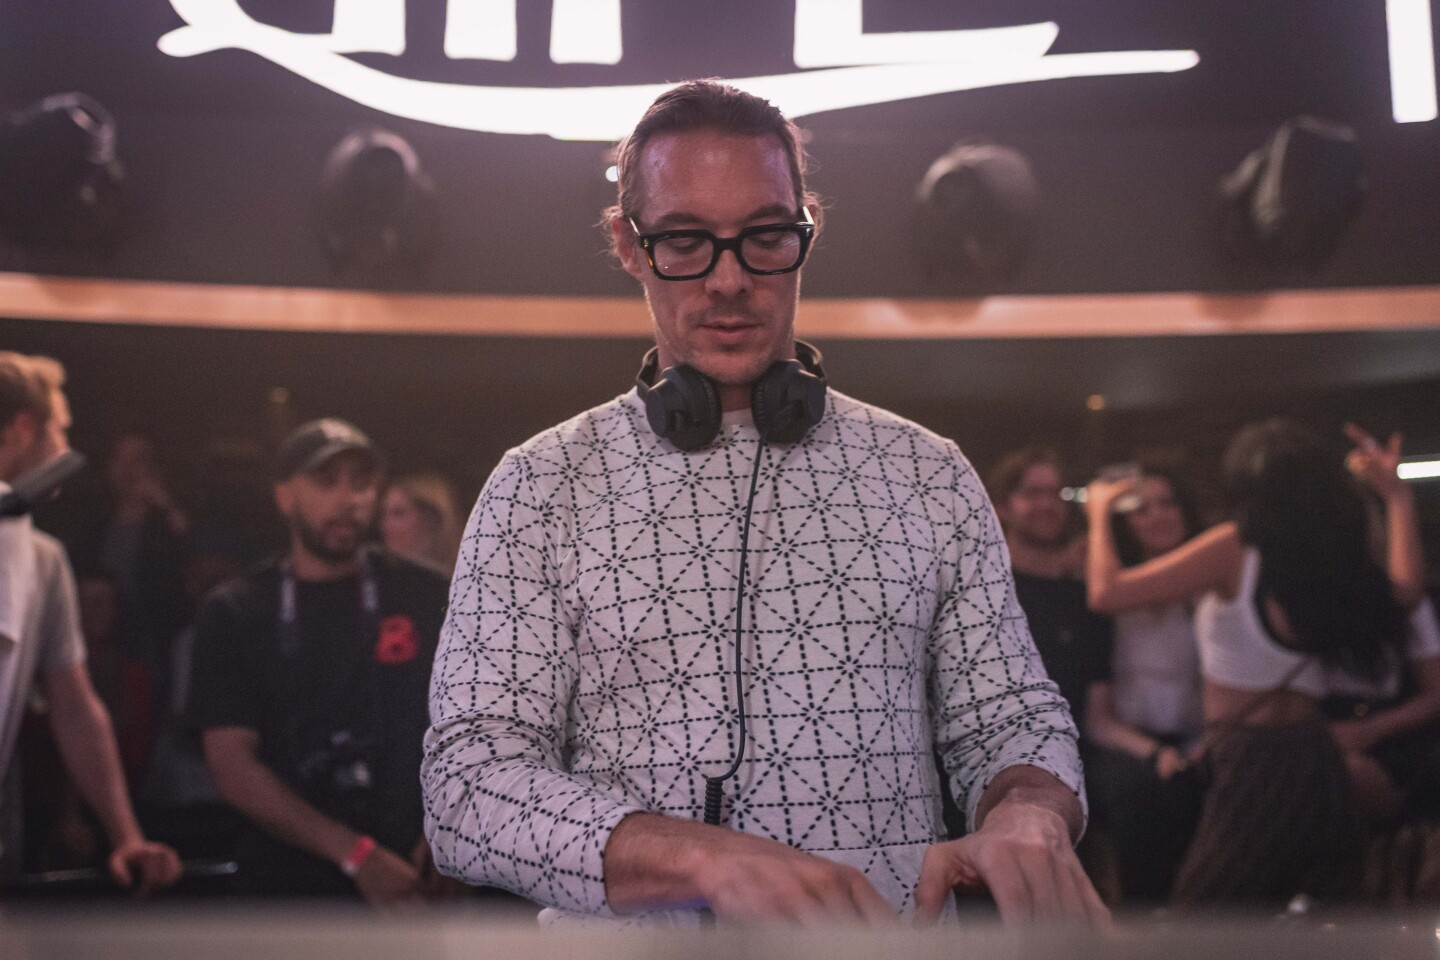 Mega producer and DJ Diplo showed San Diego some love at OMNIA Nightclub in the Gaslamp on Friday, May 24, 2019.